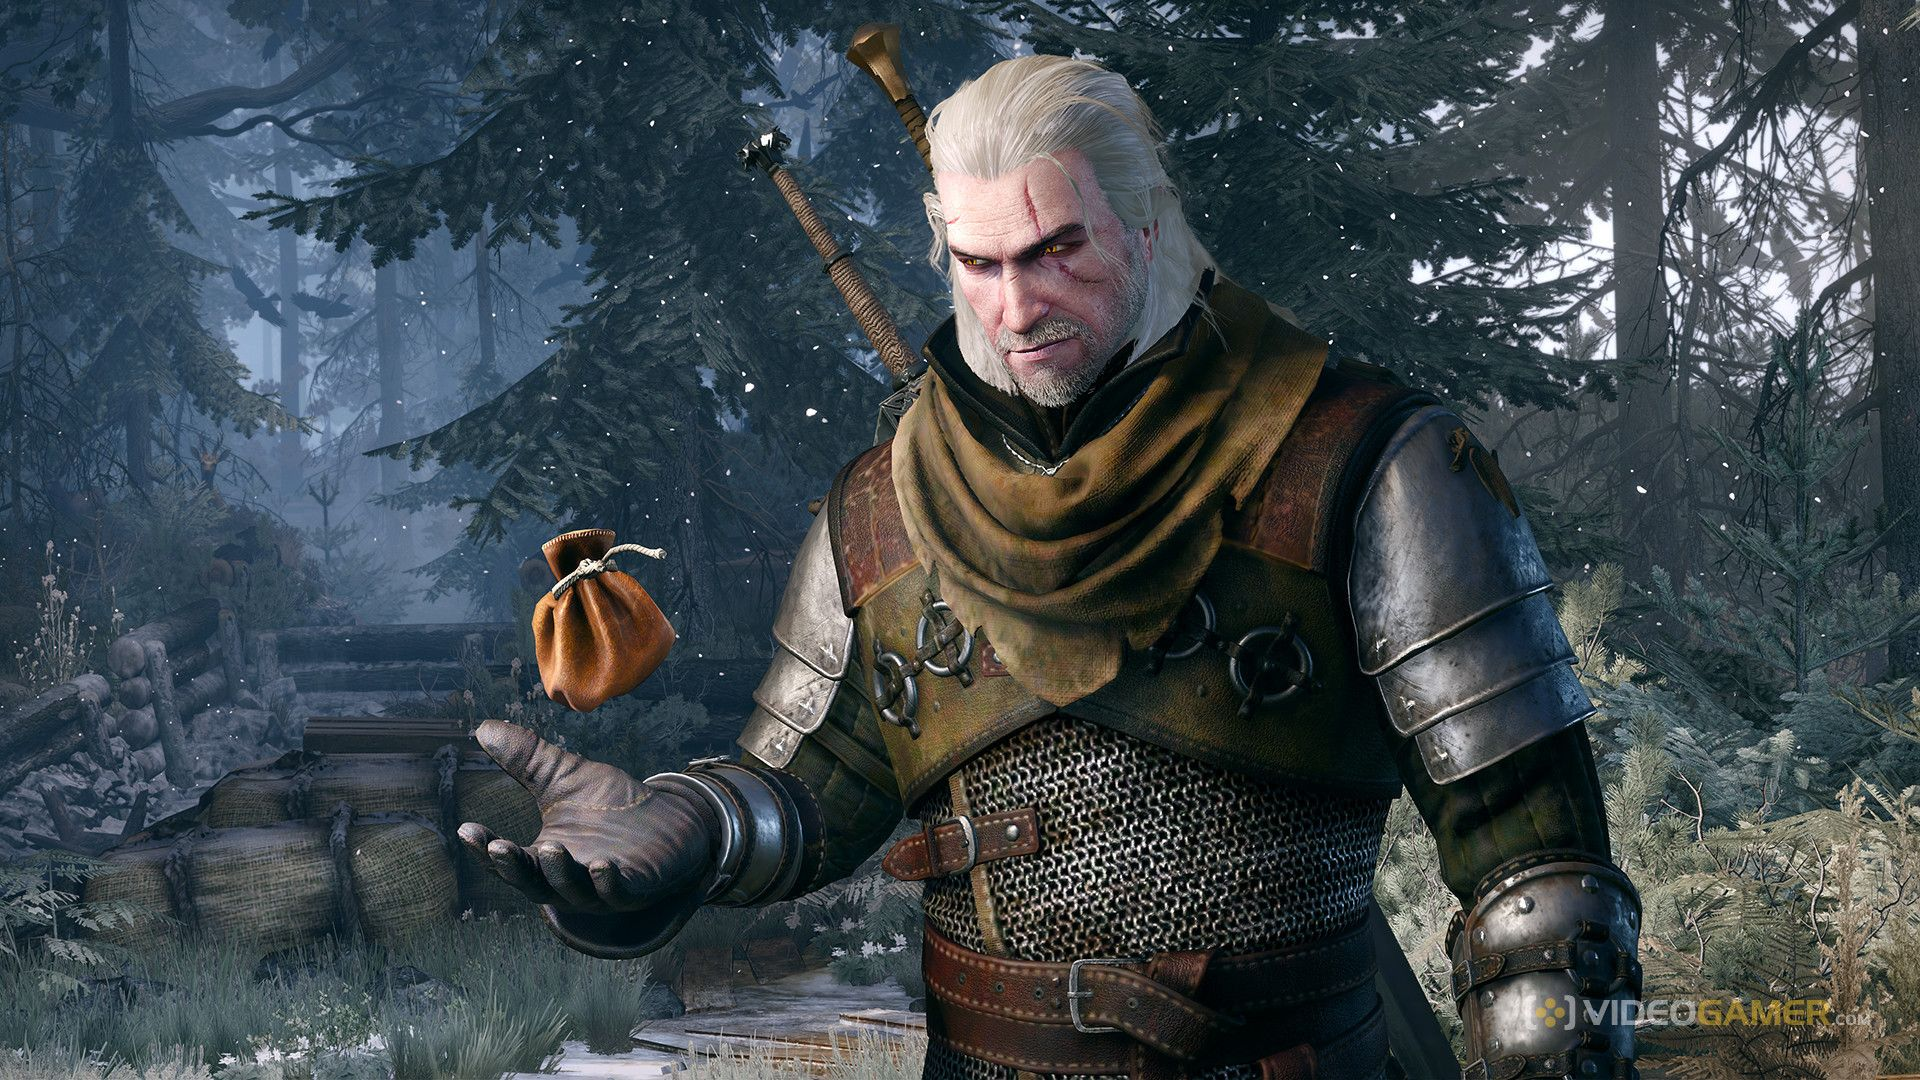 The Witcher Season 2 Spoilers and Geralt walking with a Limp